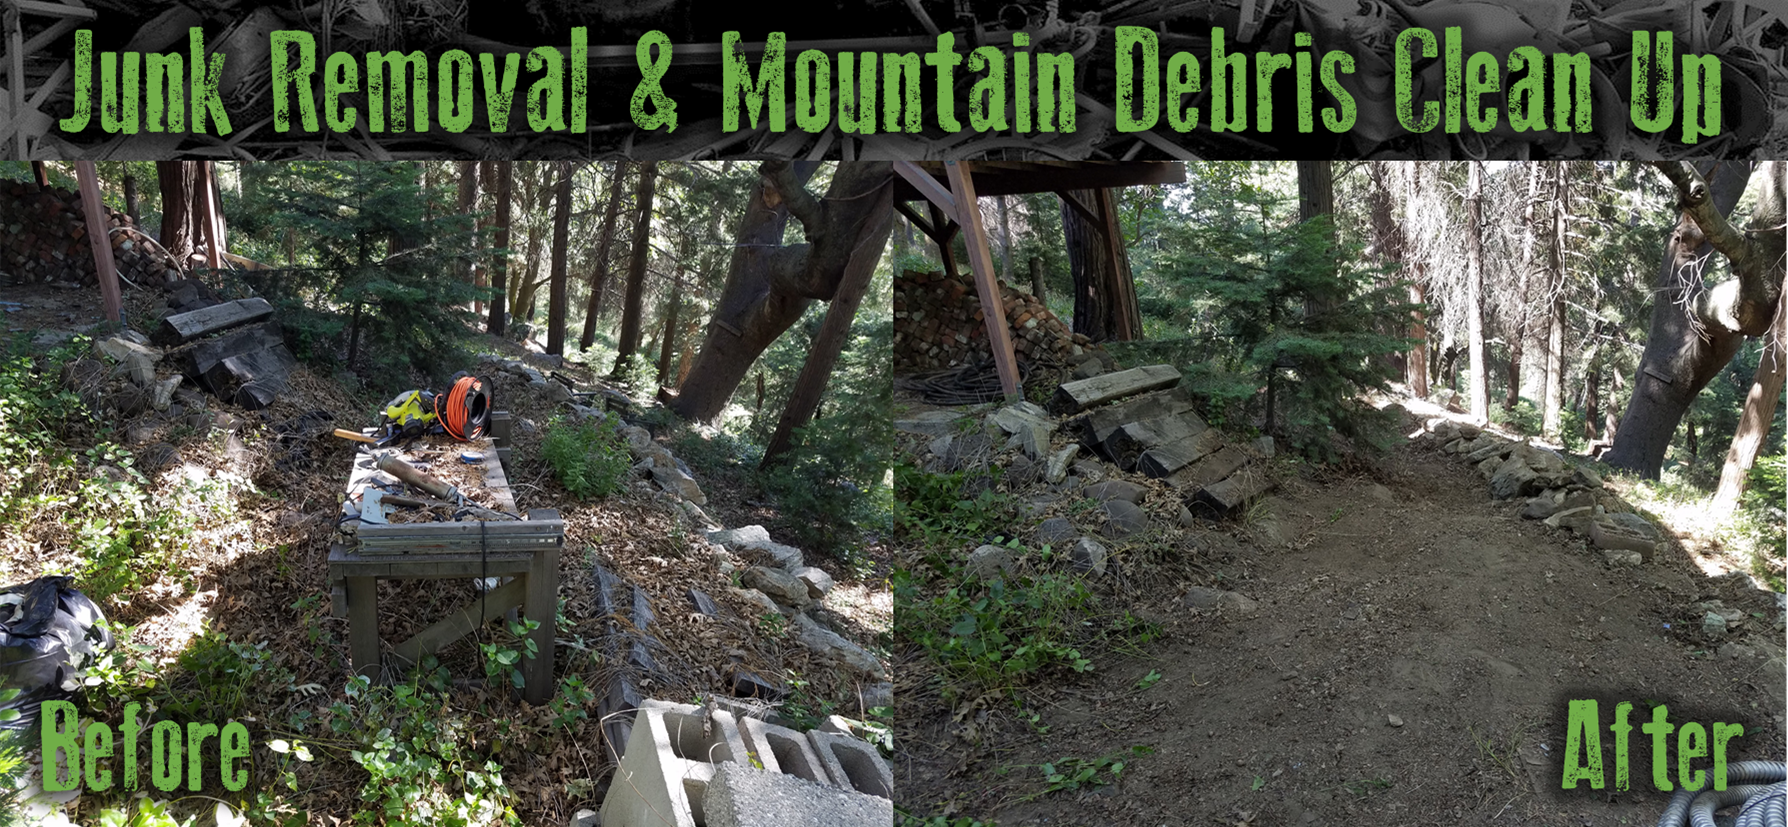 Junk removal and debris removal in the mountains.